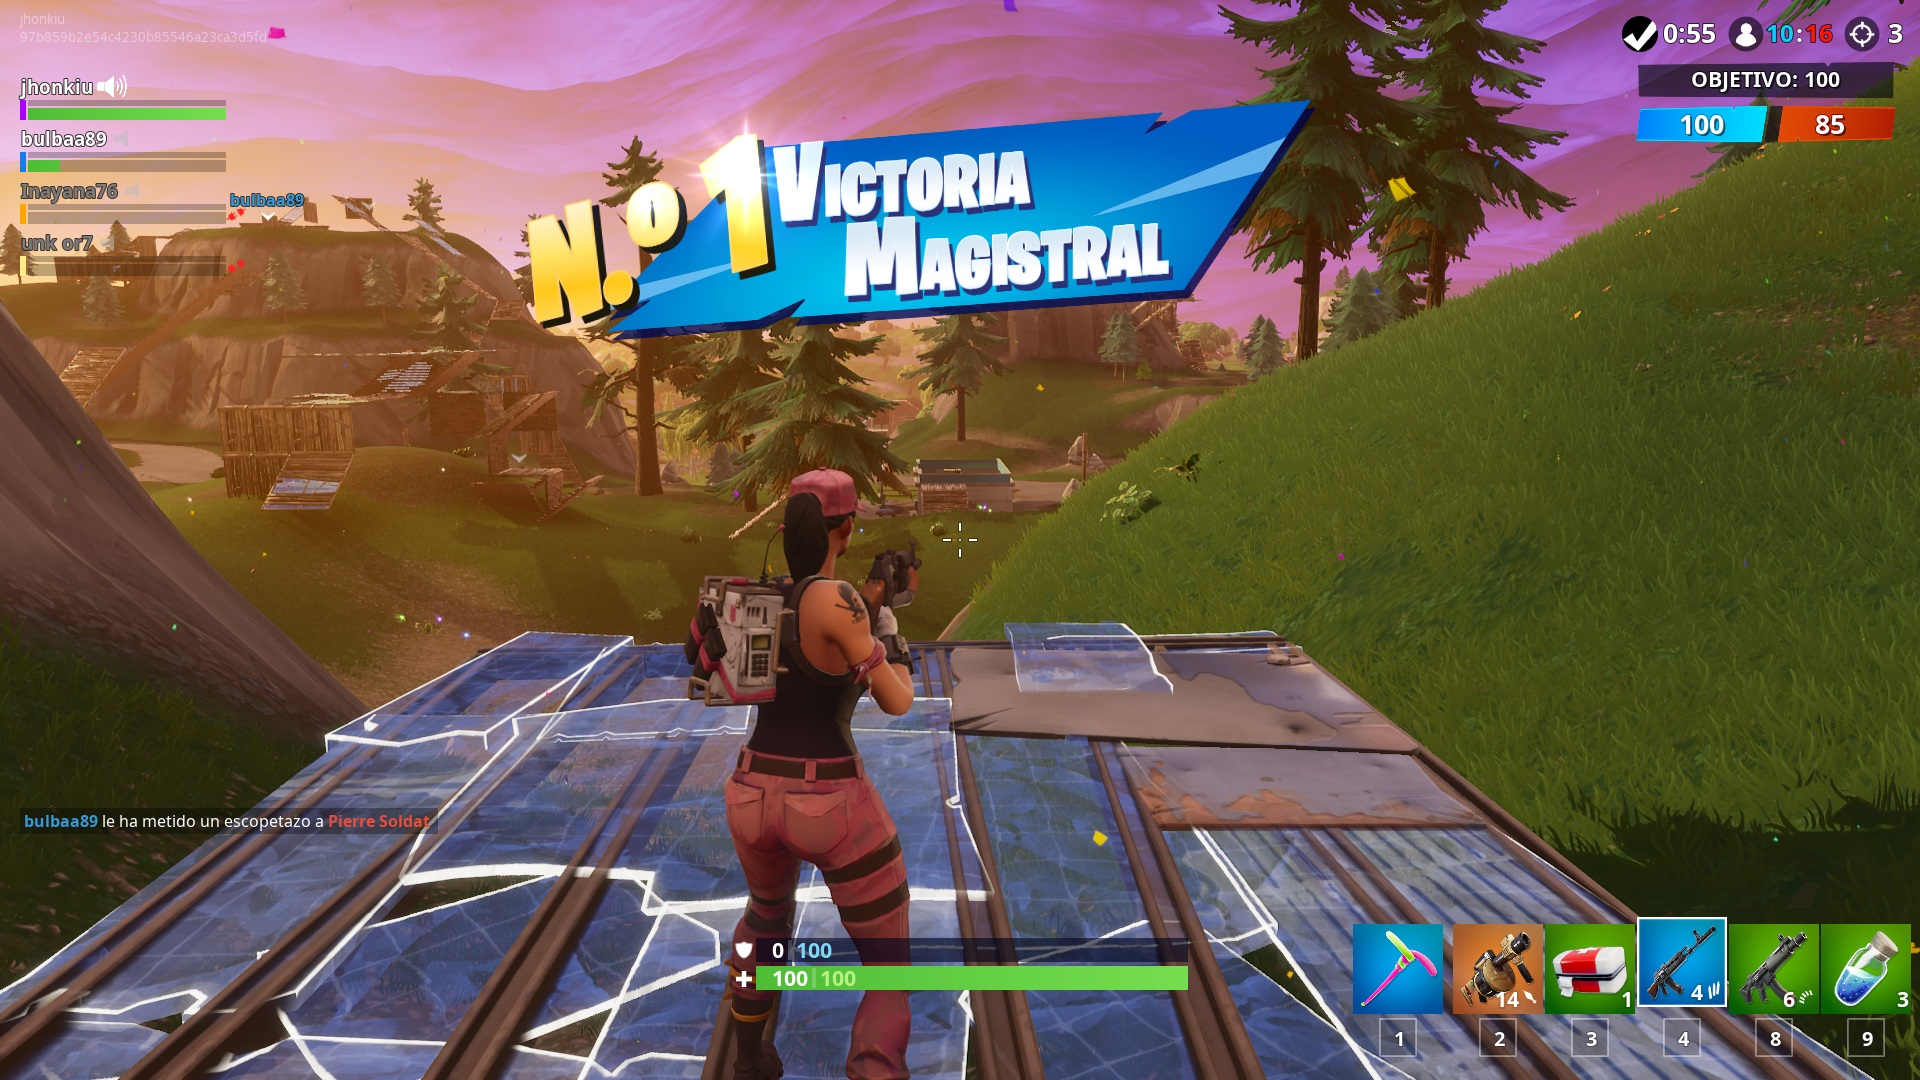 Refriega de equipos Fortnite MTL